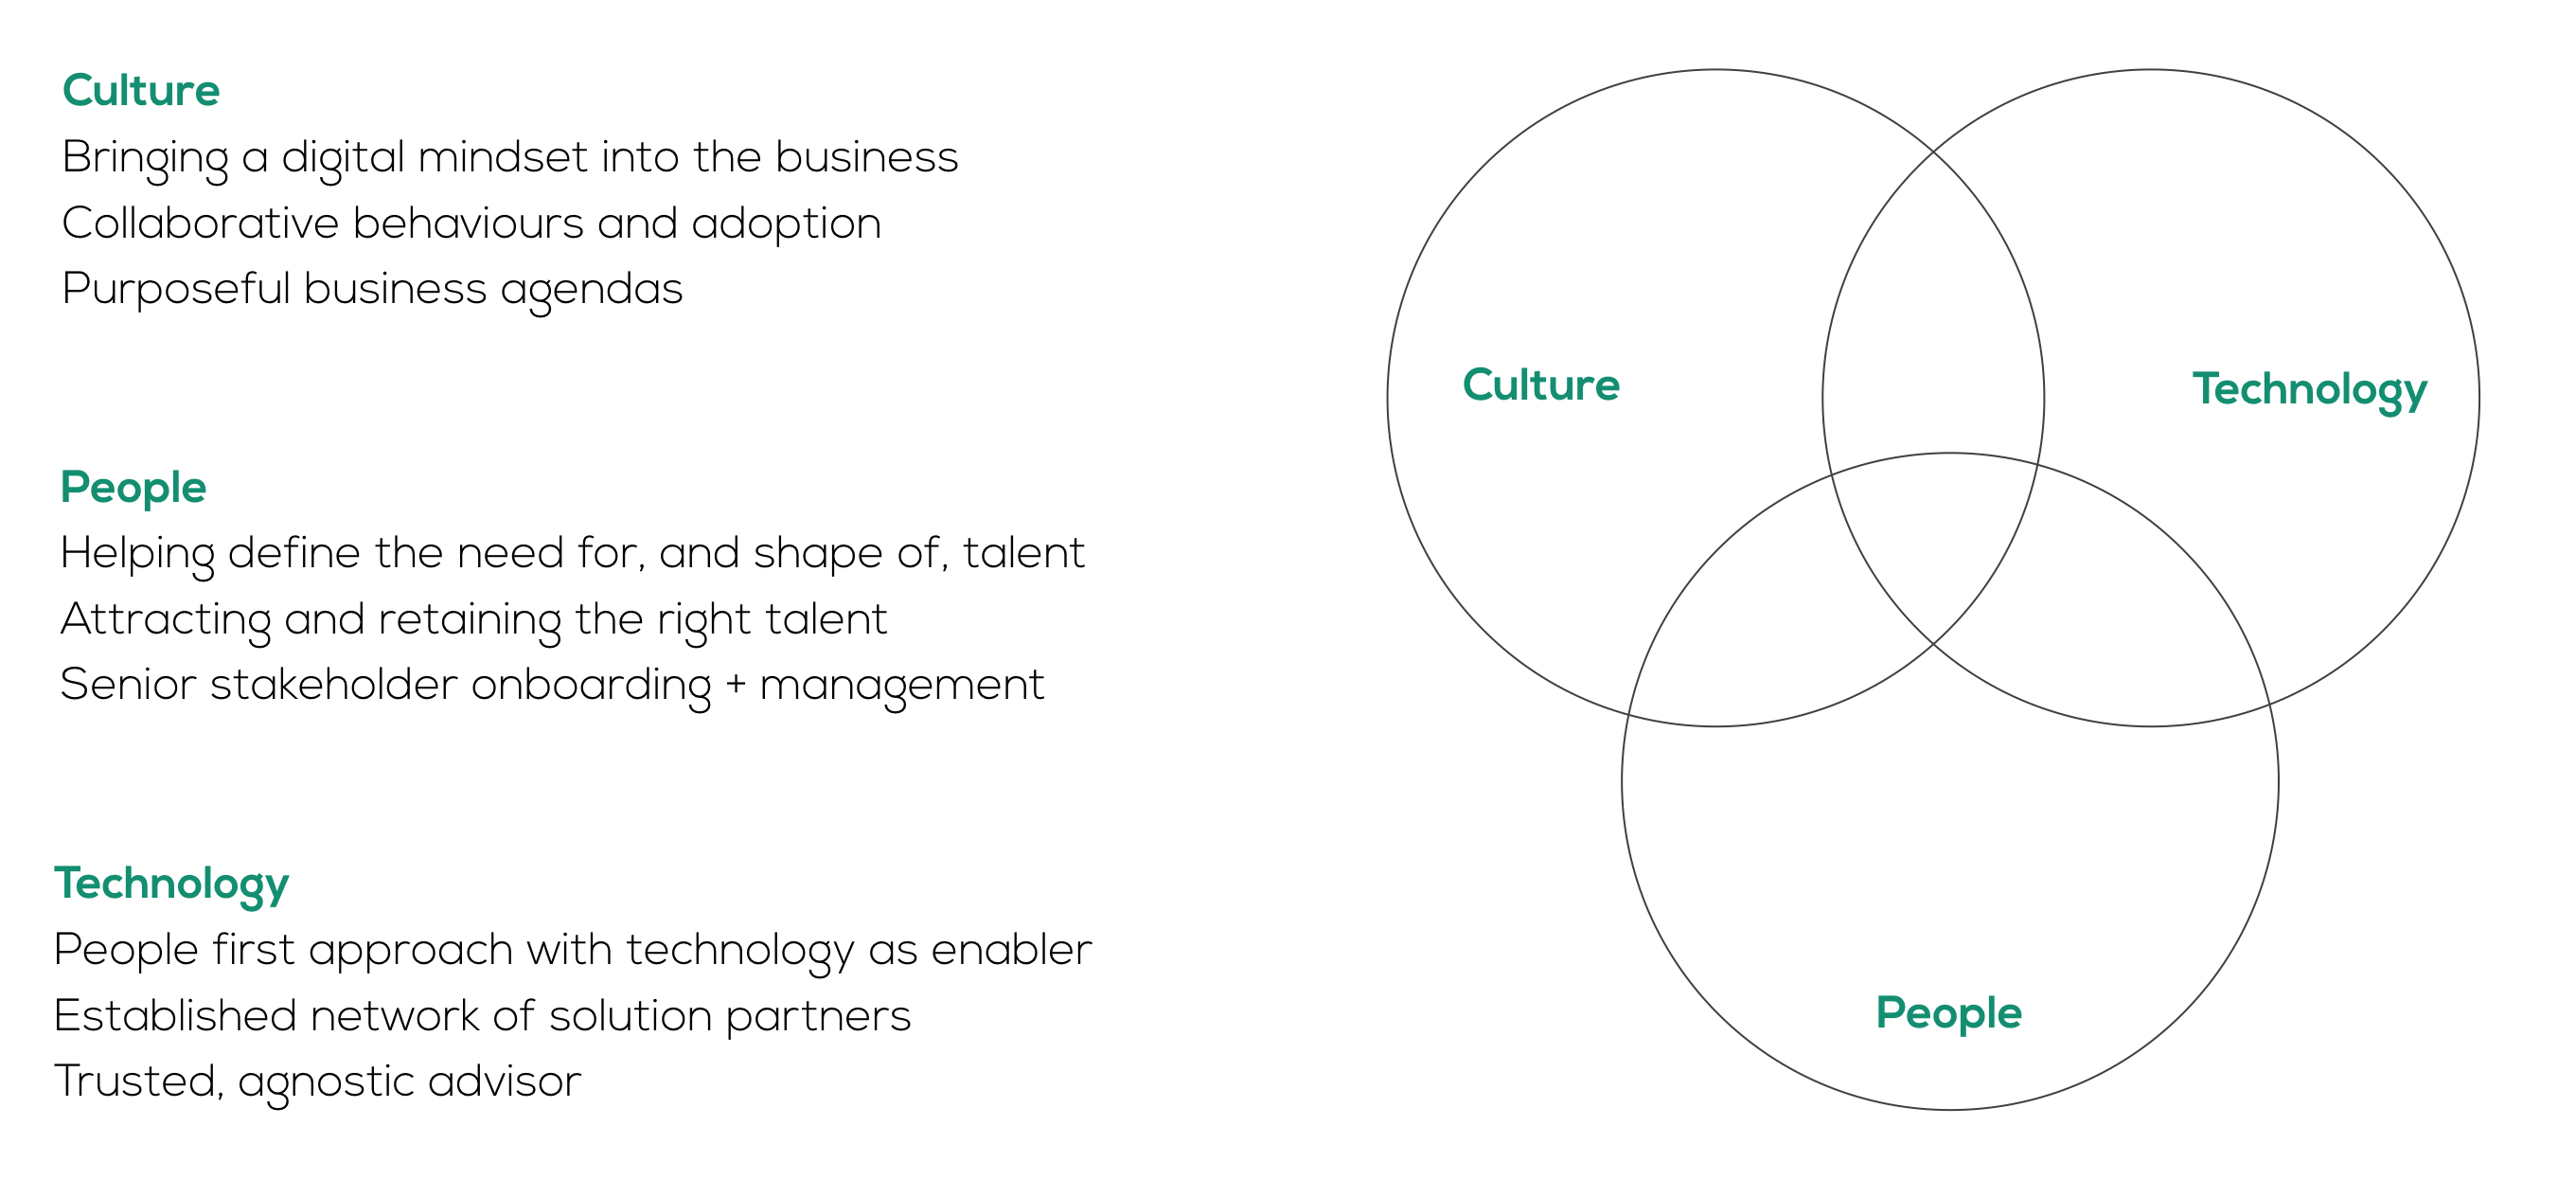 The Defining Challenge Of Our Time >> Digital promise for HR Transformation - We Are Atmosphere